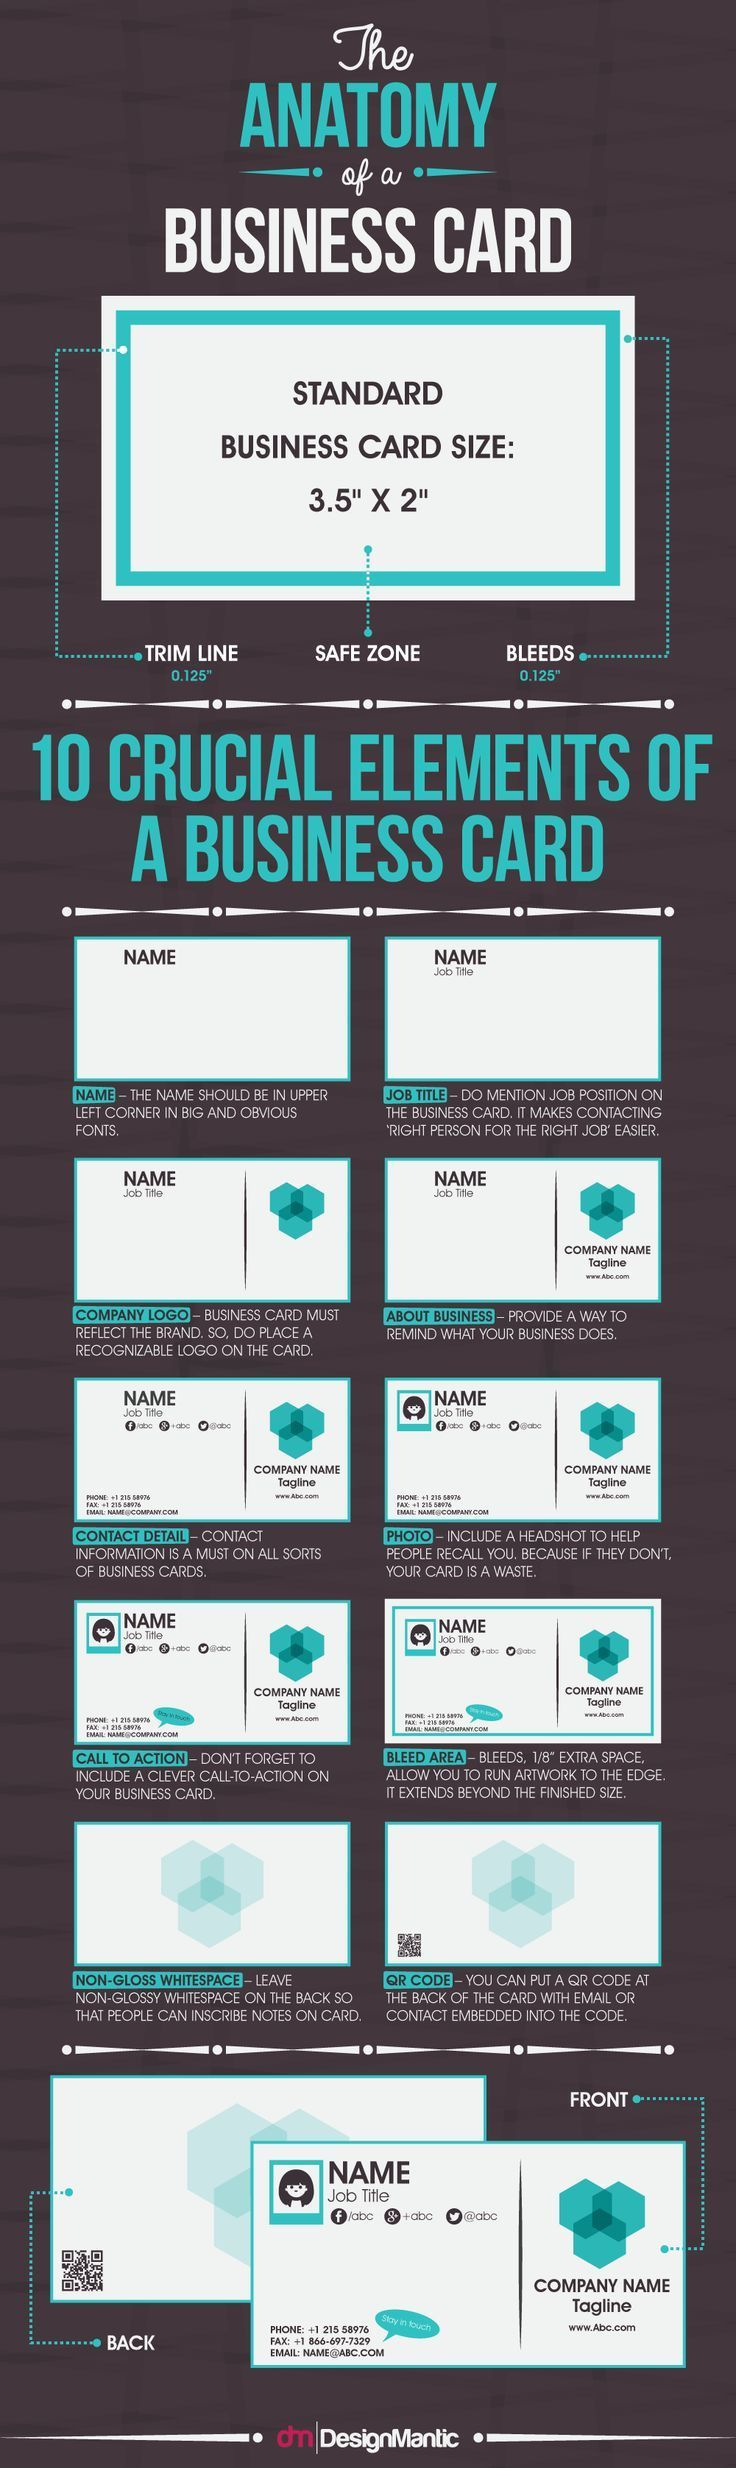 The Anatomy Of A Business Card #Infographic | Business cards ...